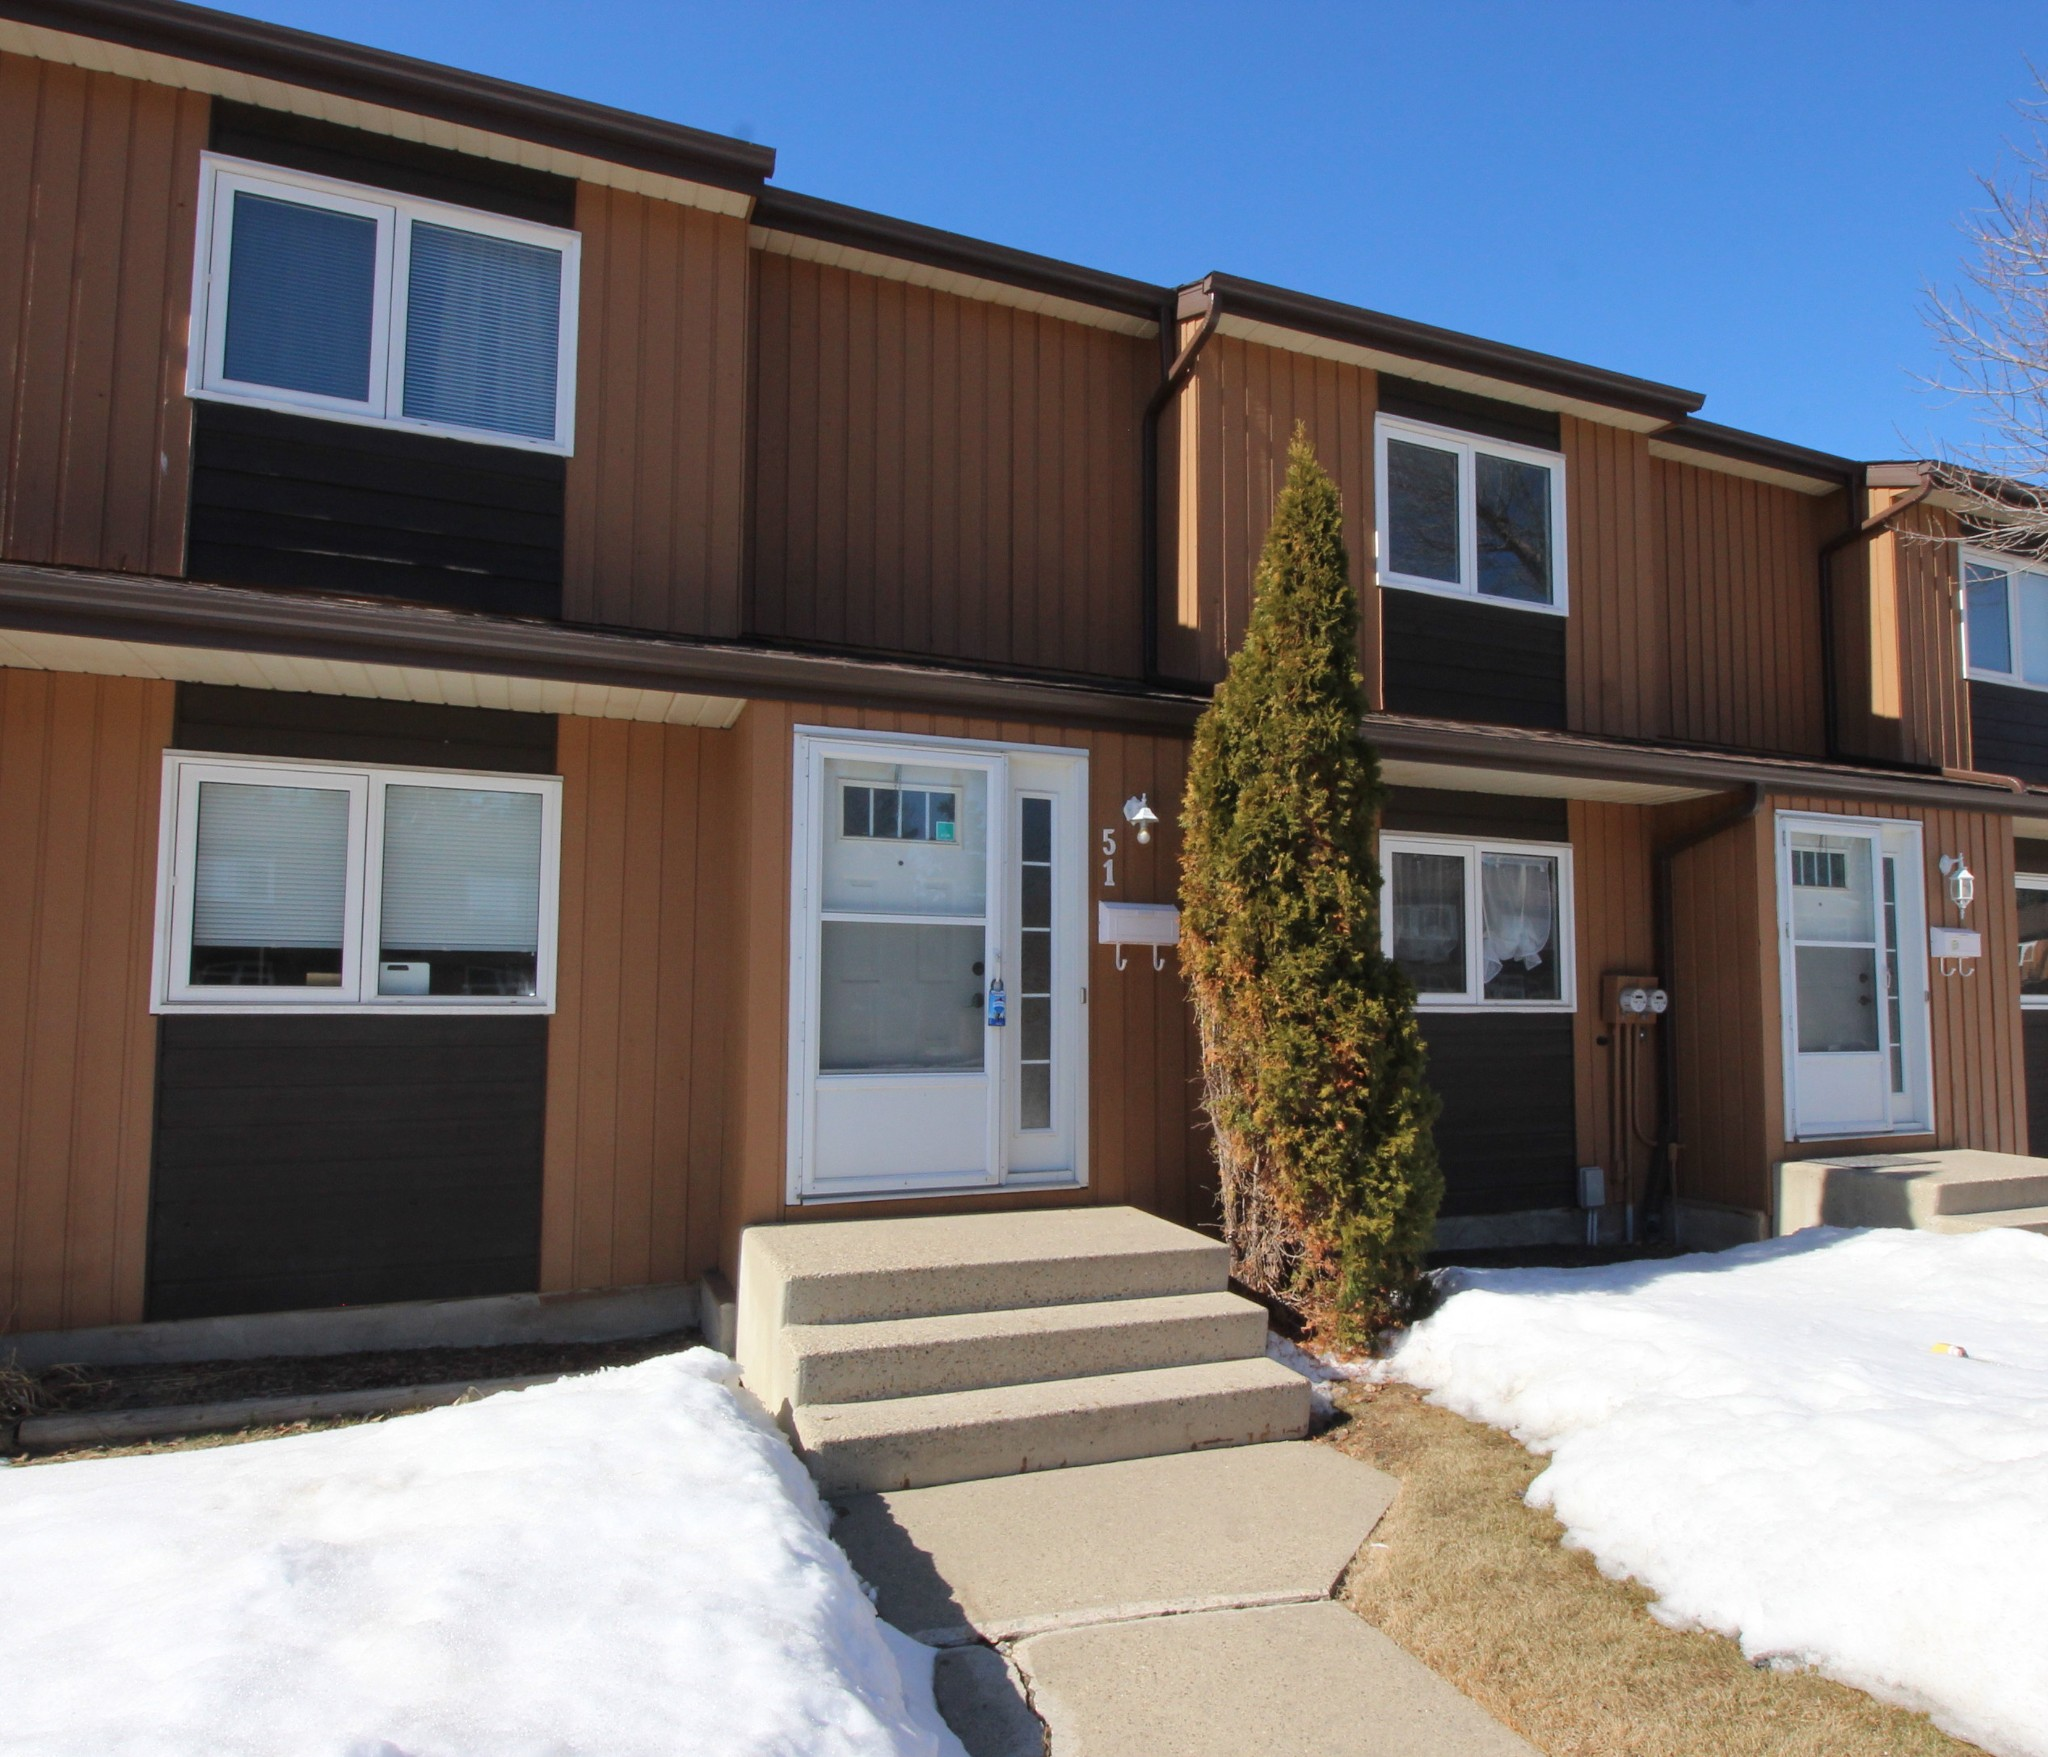 Main Photo: 51 3115 119 Street in Edmonton: Townhouse for sale